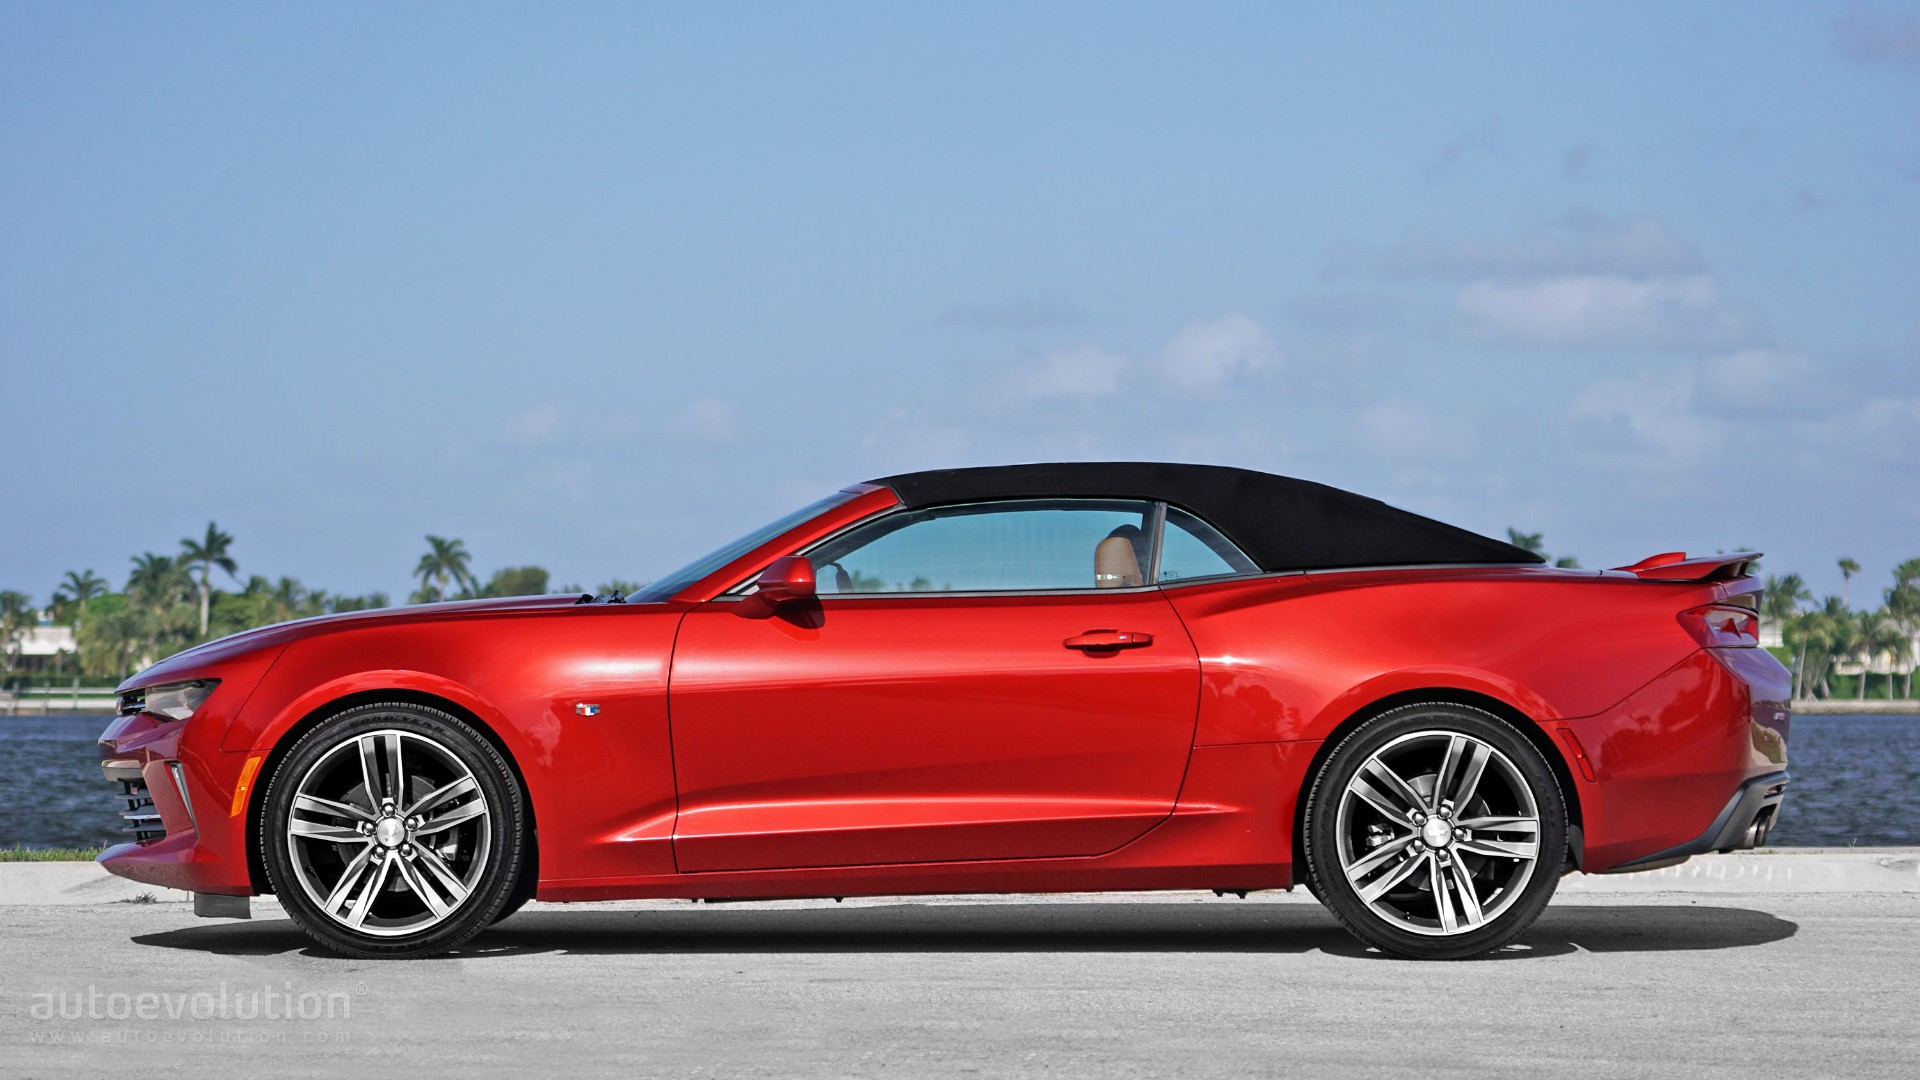 Ats Vs Cts >> Driven: 2016 Chevrolet Camaro RS Convertible - autoevolution